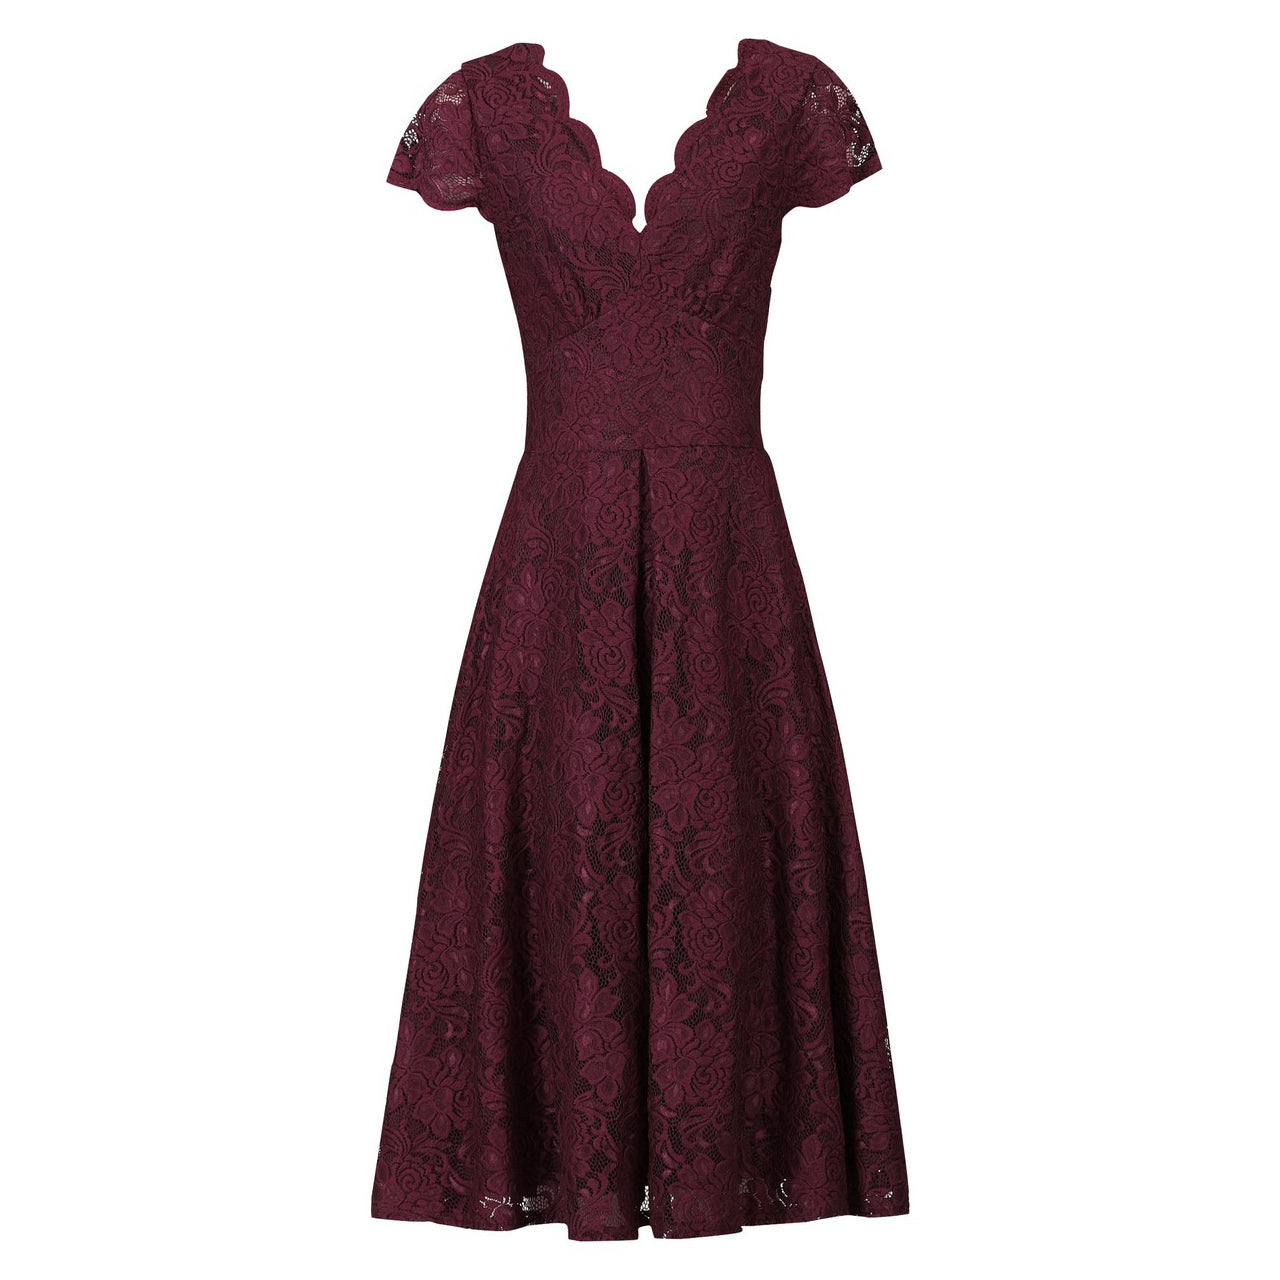 1b0a6995acbb Burgundy Red Cap Sleeve Scallop Neck Embroidered Lace 50s Bridesmaid Swing  Dress